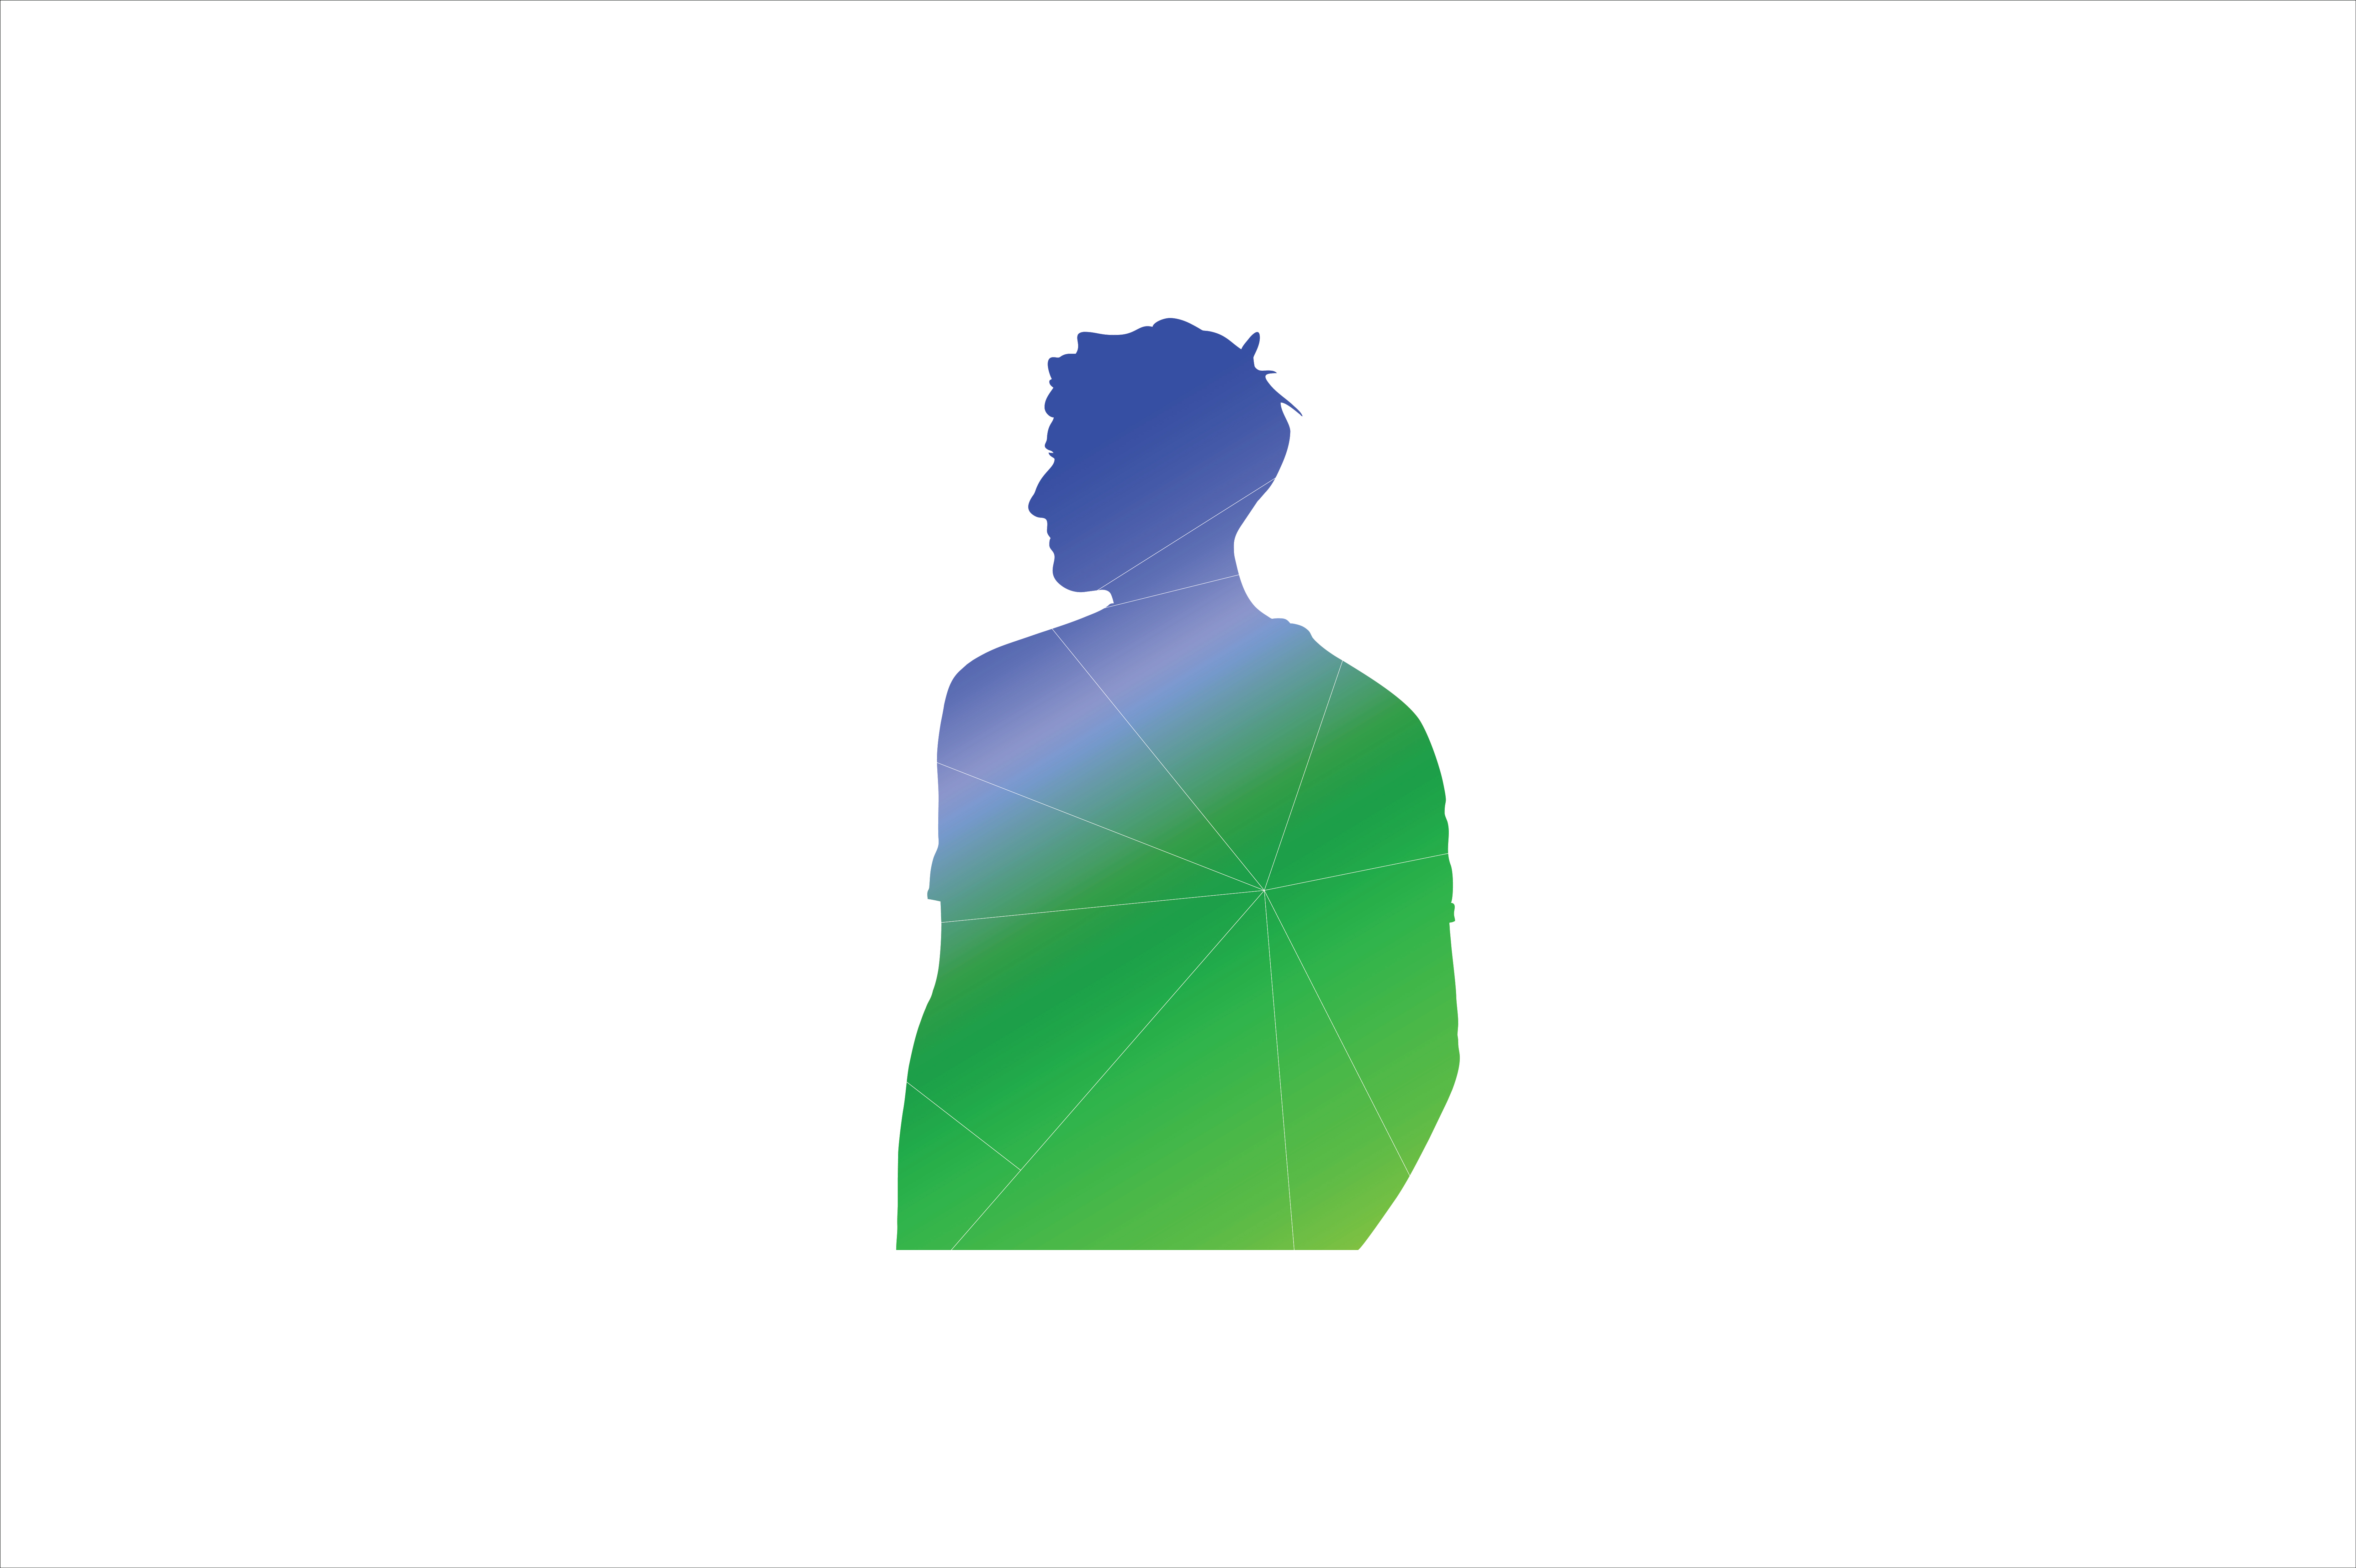 Download Free Men Silhouette Graphic By Lfisaudara29 Creative Fabrica for Cricut Explore, Silhouette and other cutting machines.